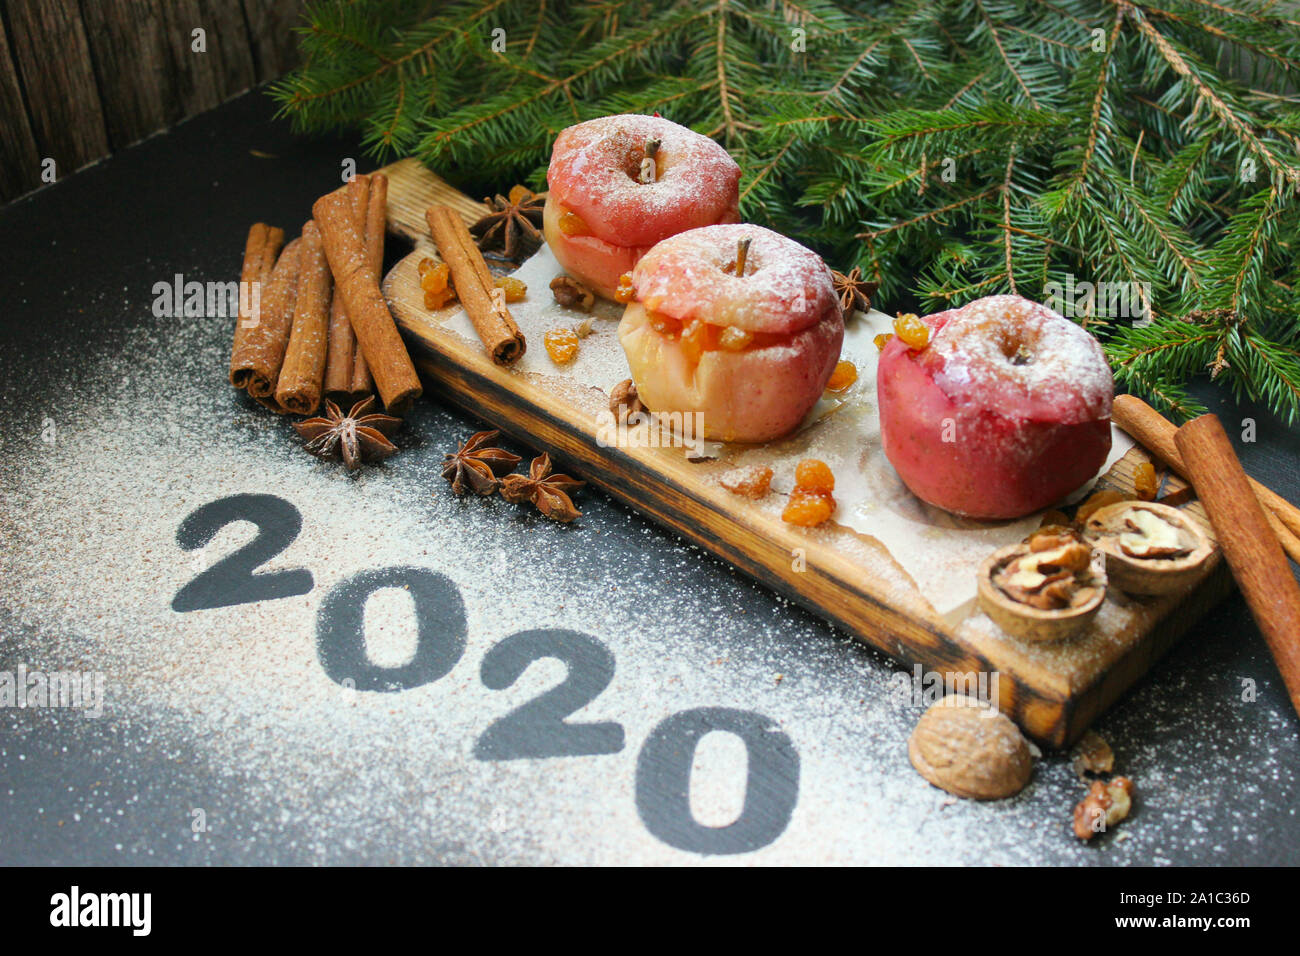 Apple Christmas 2020 New year 2020, numbers written in flour on table. baked apple with